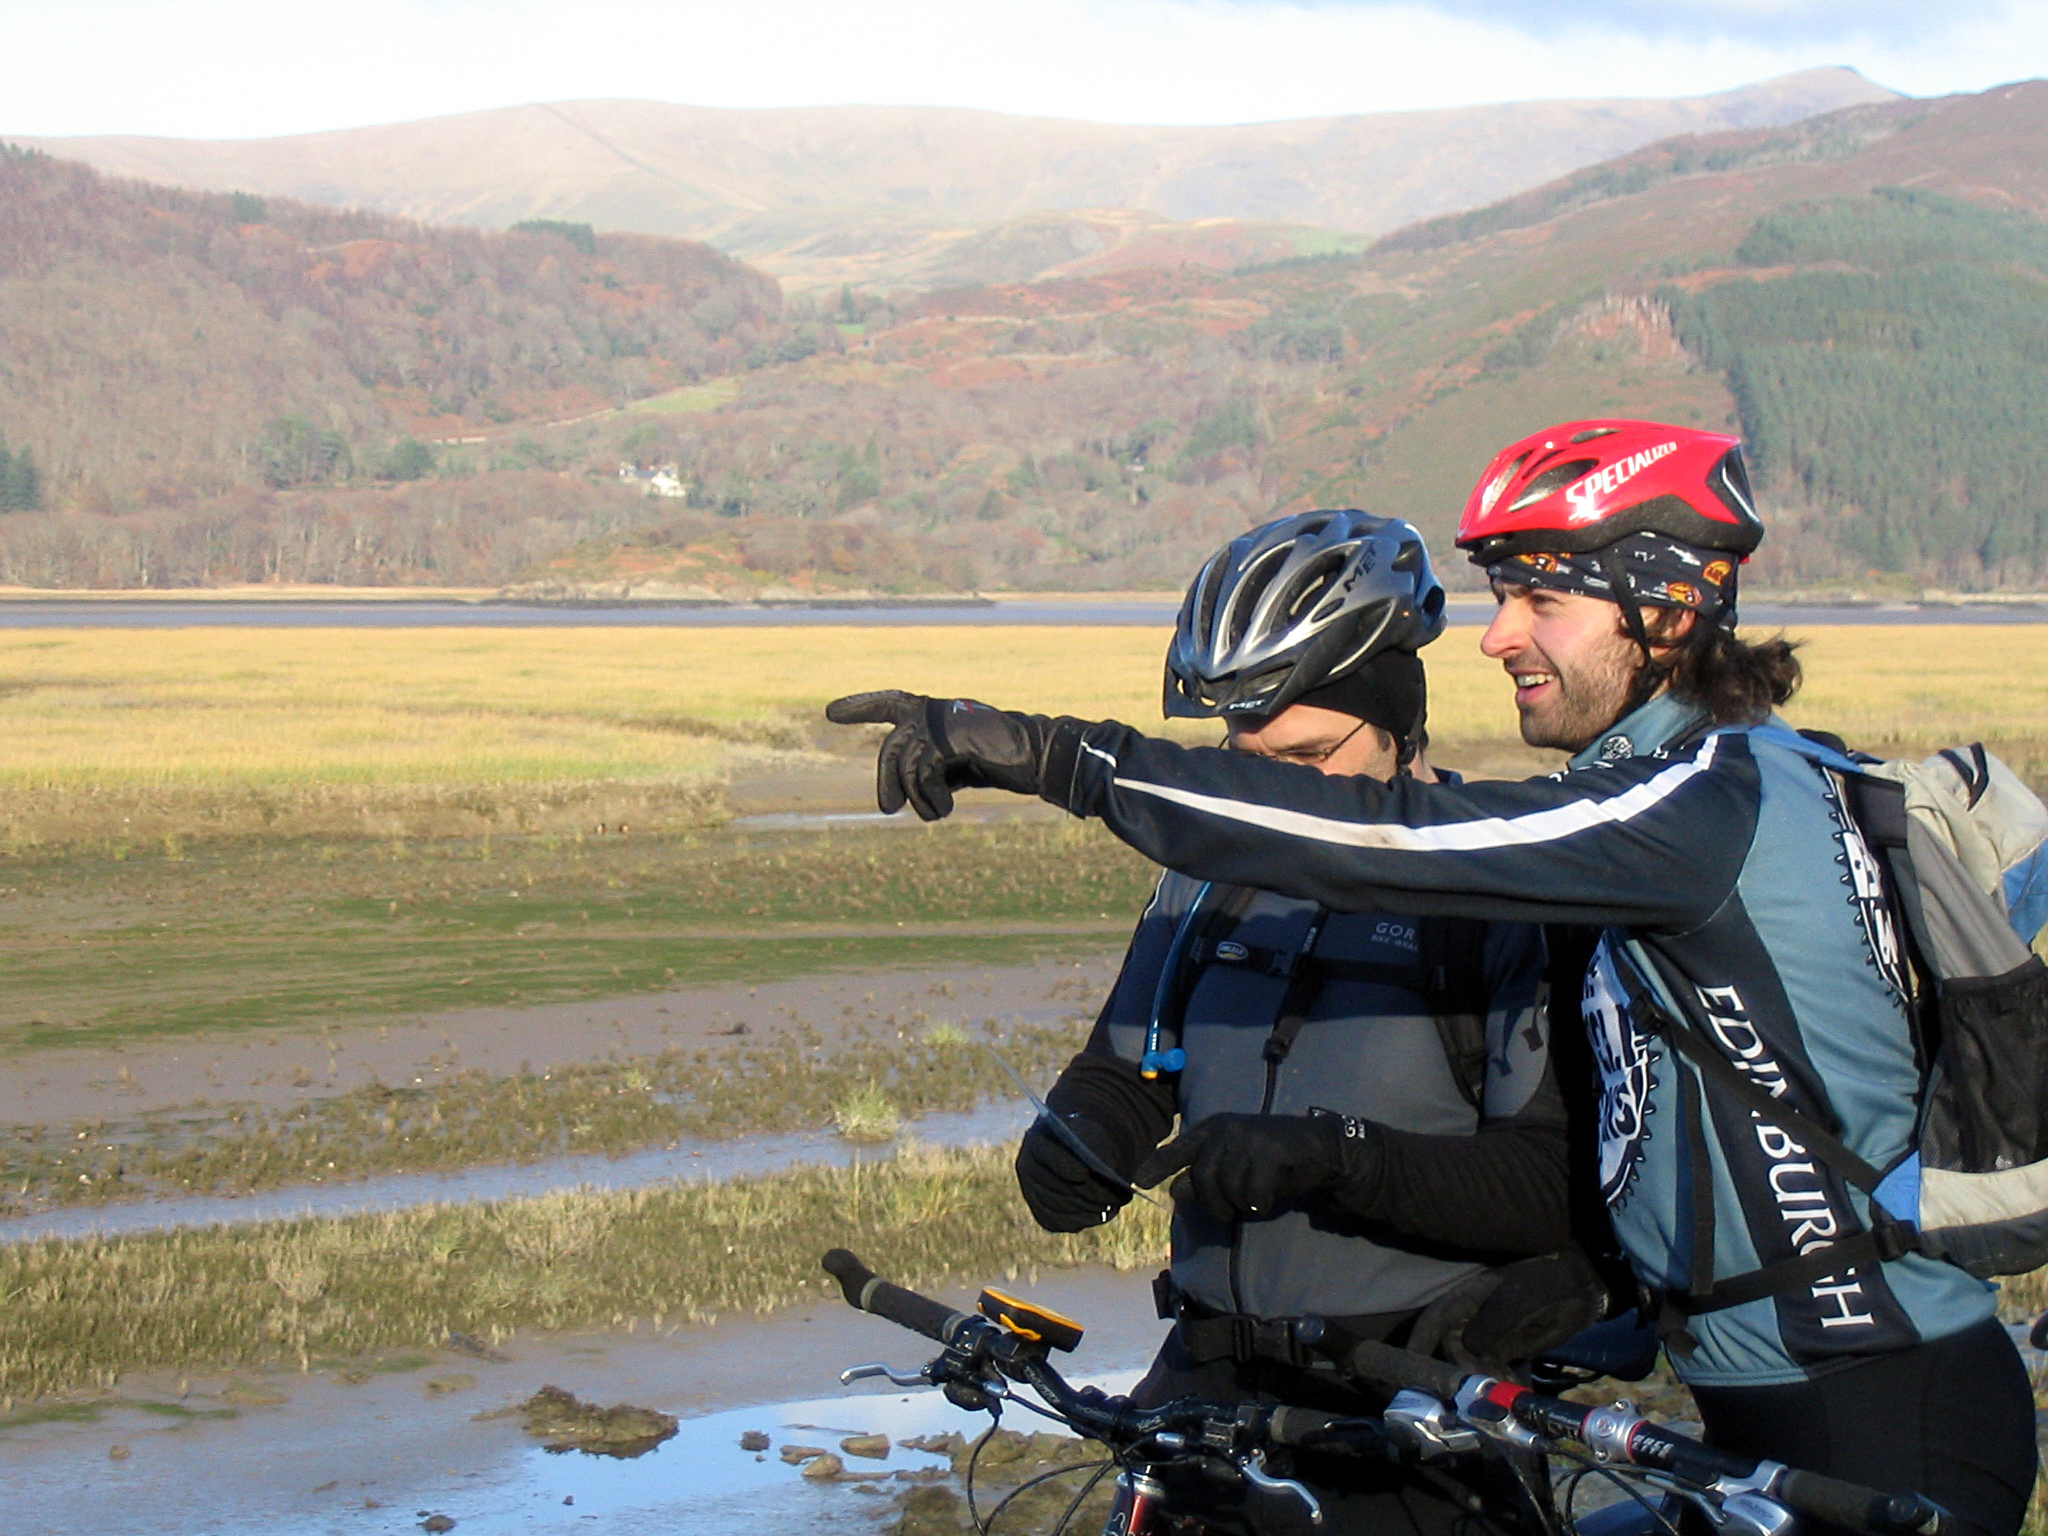 Bikers on Mawddach-2